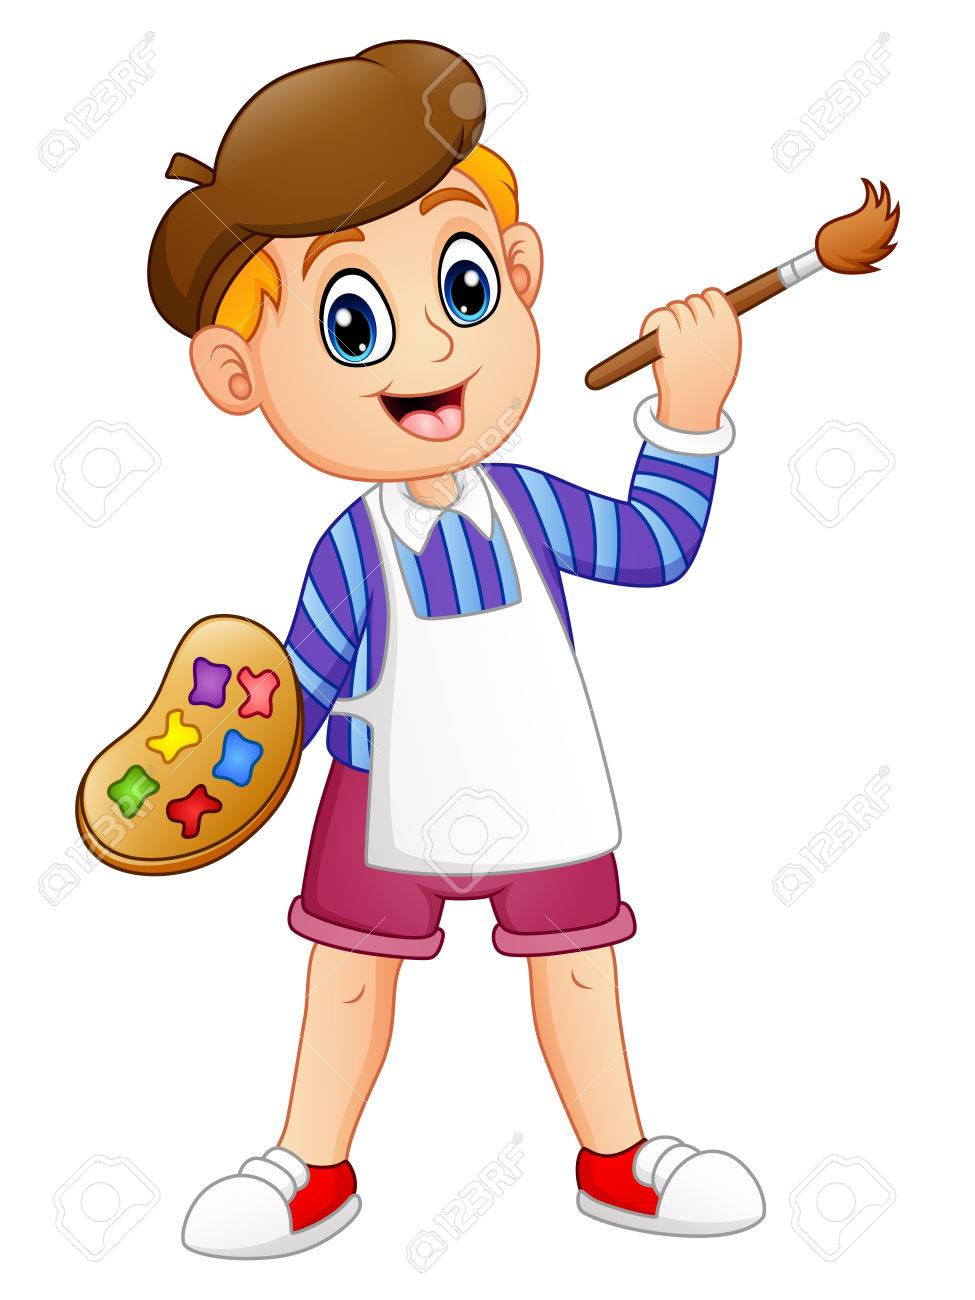 Boy painting clipart 8 » Clipart Station.